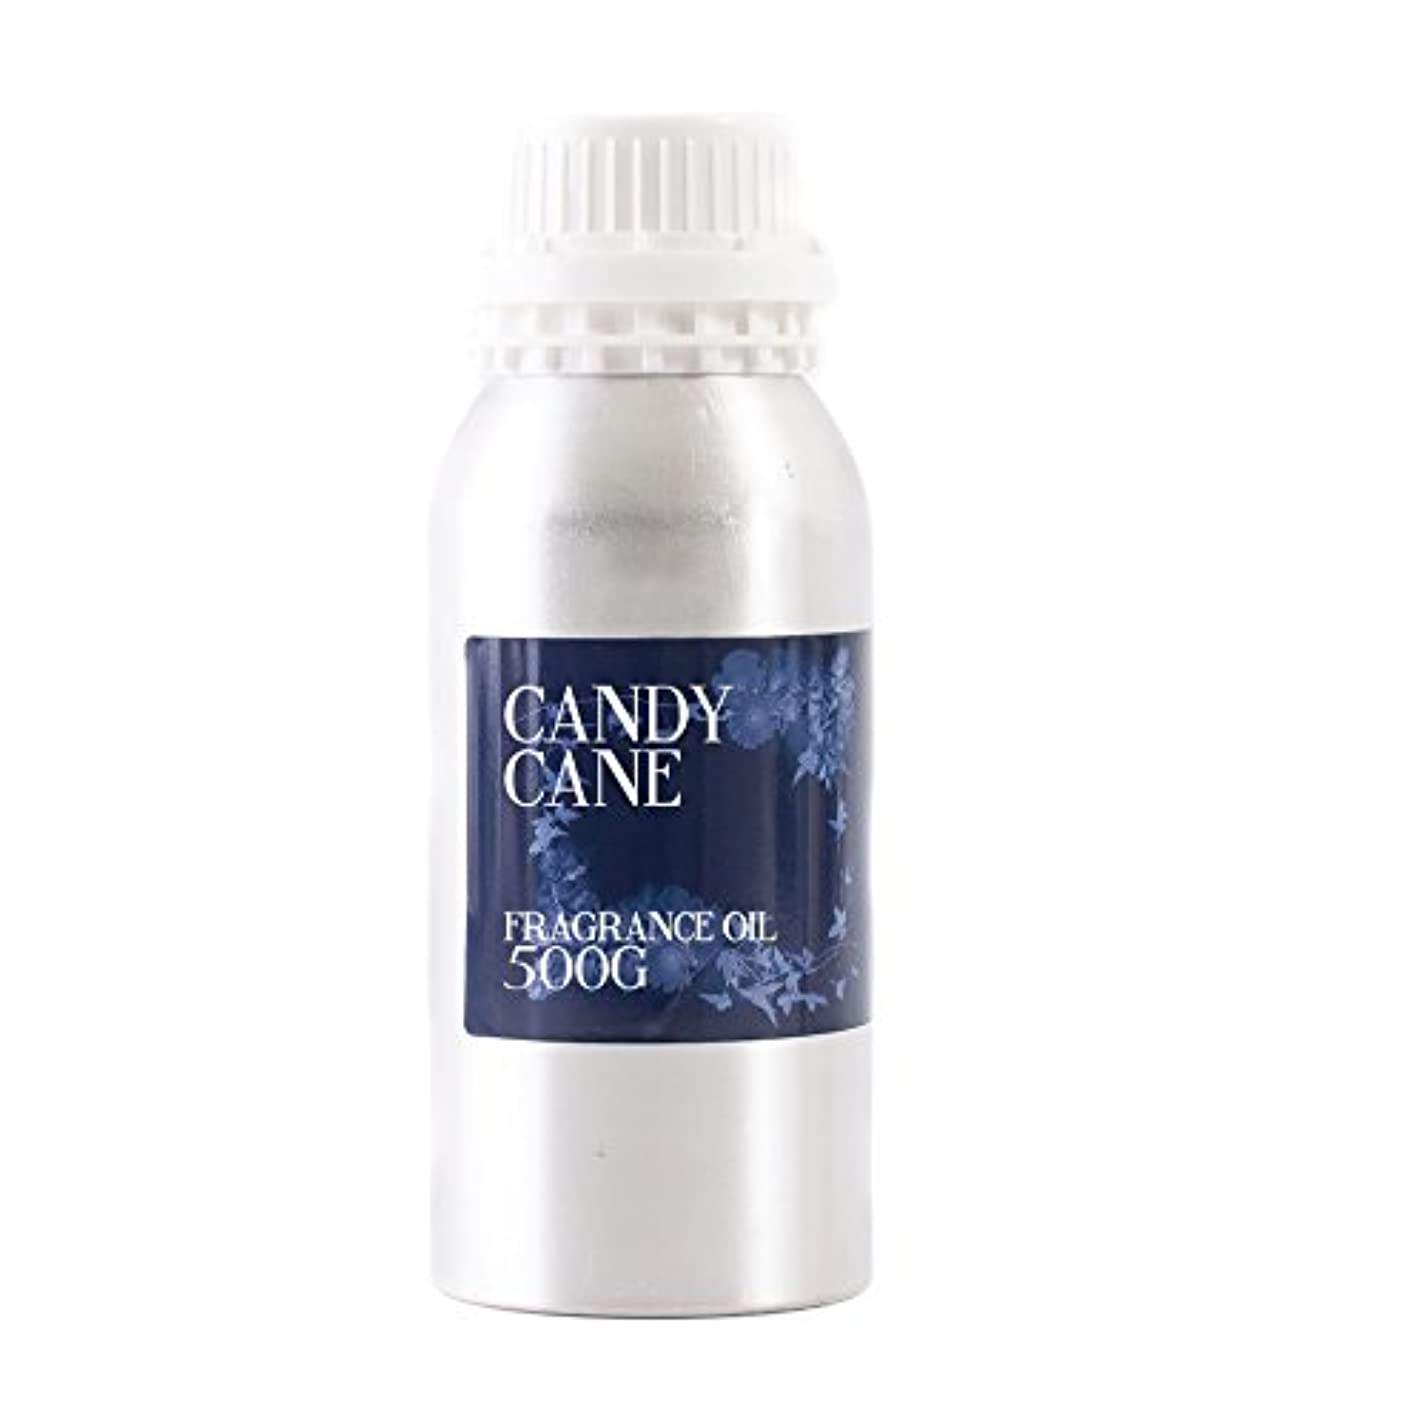 シンボル討論関係するMystic Moments | Candy Cane Fragrance Oil - 500g